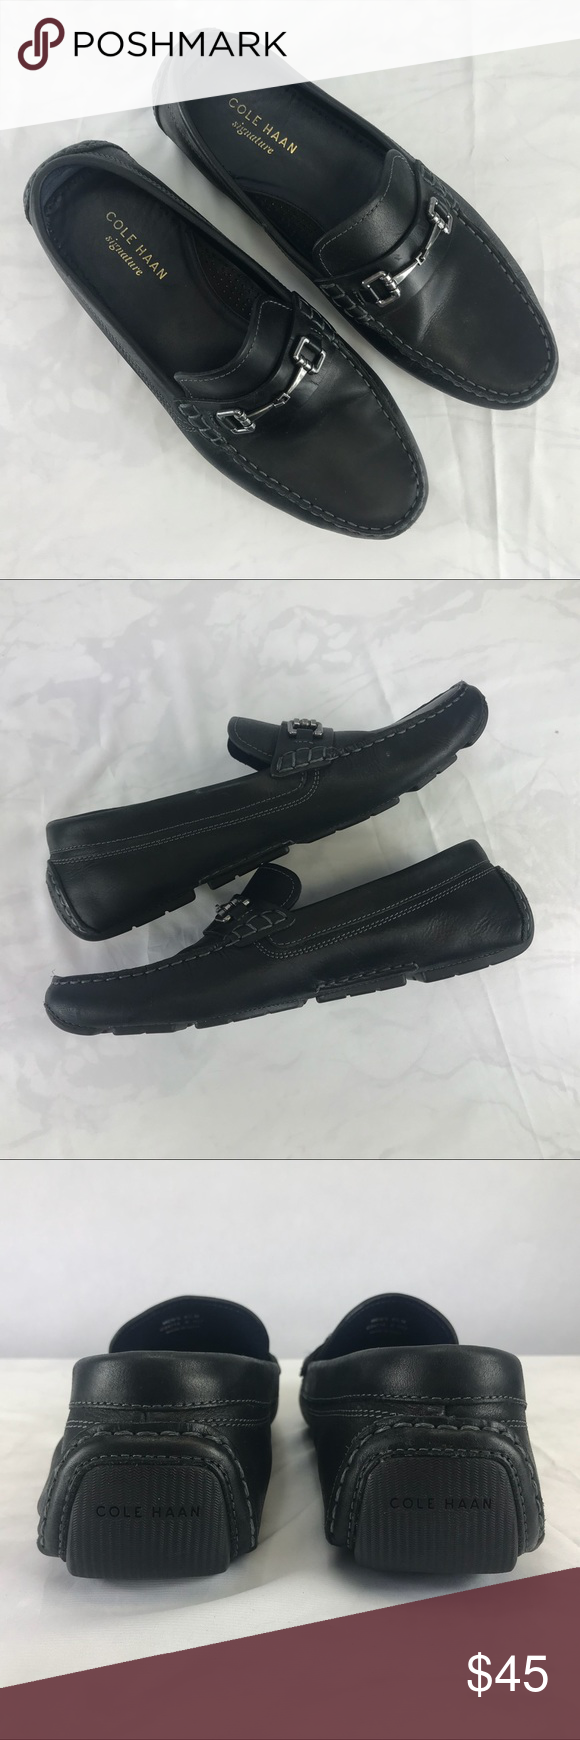 54cb8f8d4dc Cole Haan Kelson Bit Driver Driving Moccasins Cole Haan Black Kelson Bit  Driver Leather Driving Moccasins Mens Sz 9.5 C24714 Nice pre-owned  condition